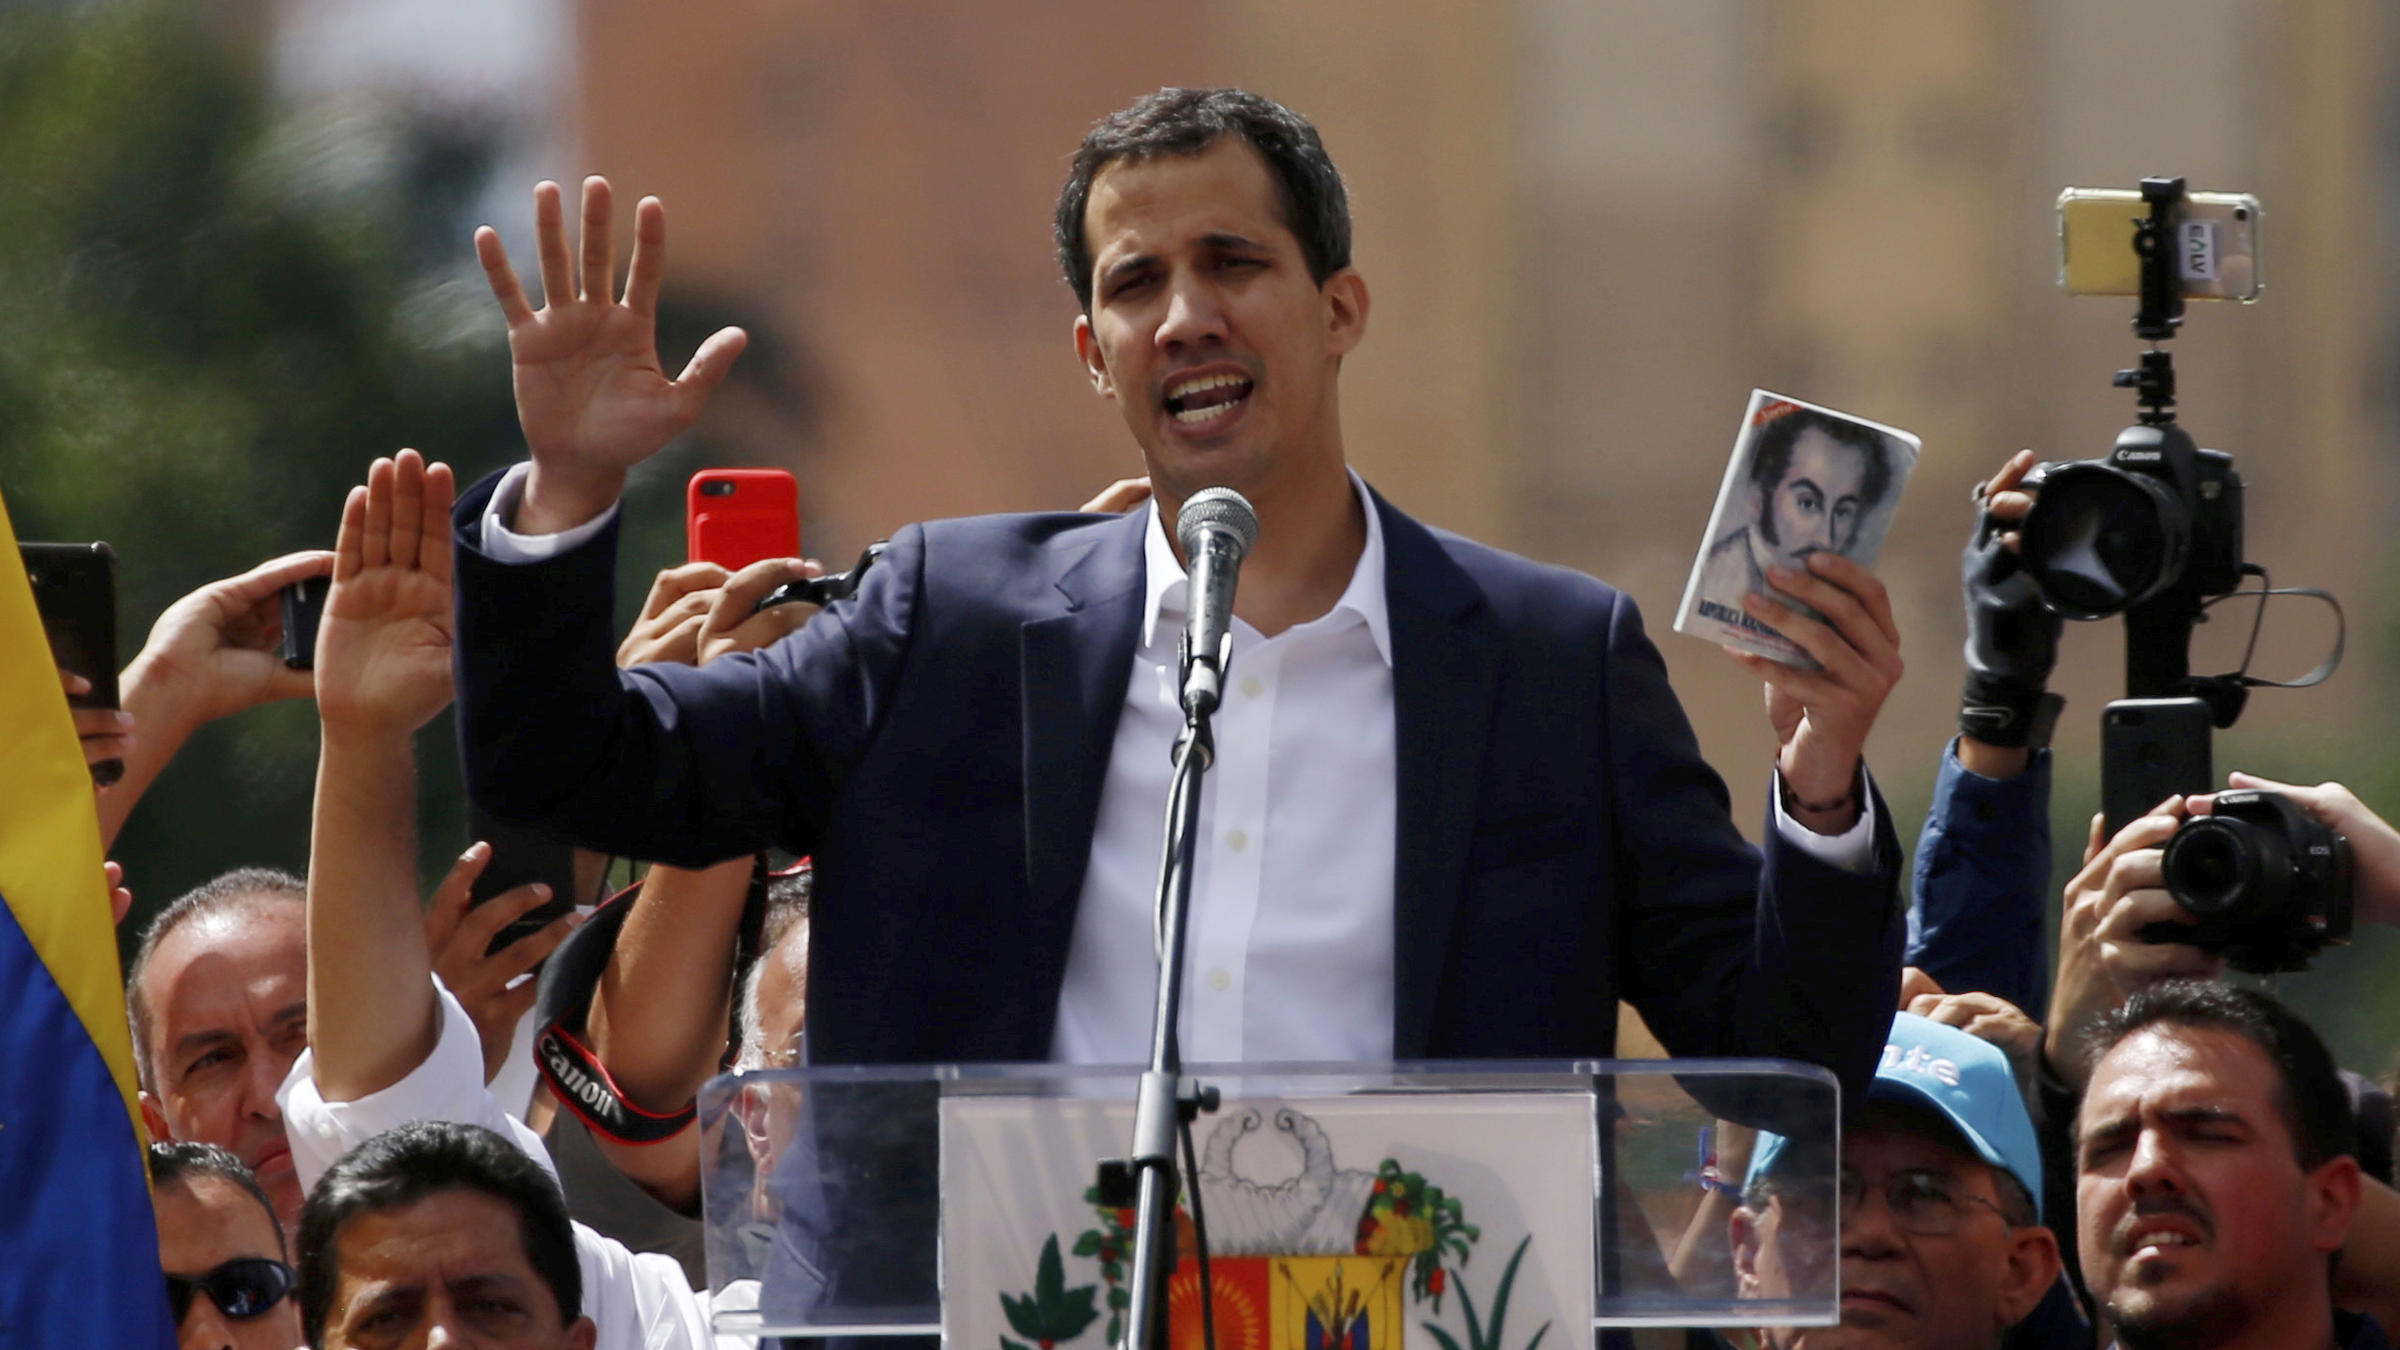 Juan Guaidó declared himself Venezuela's interim president